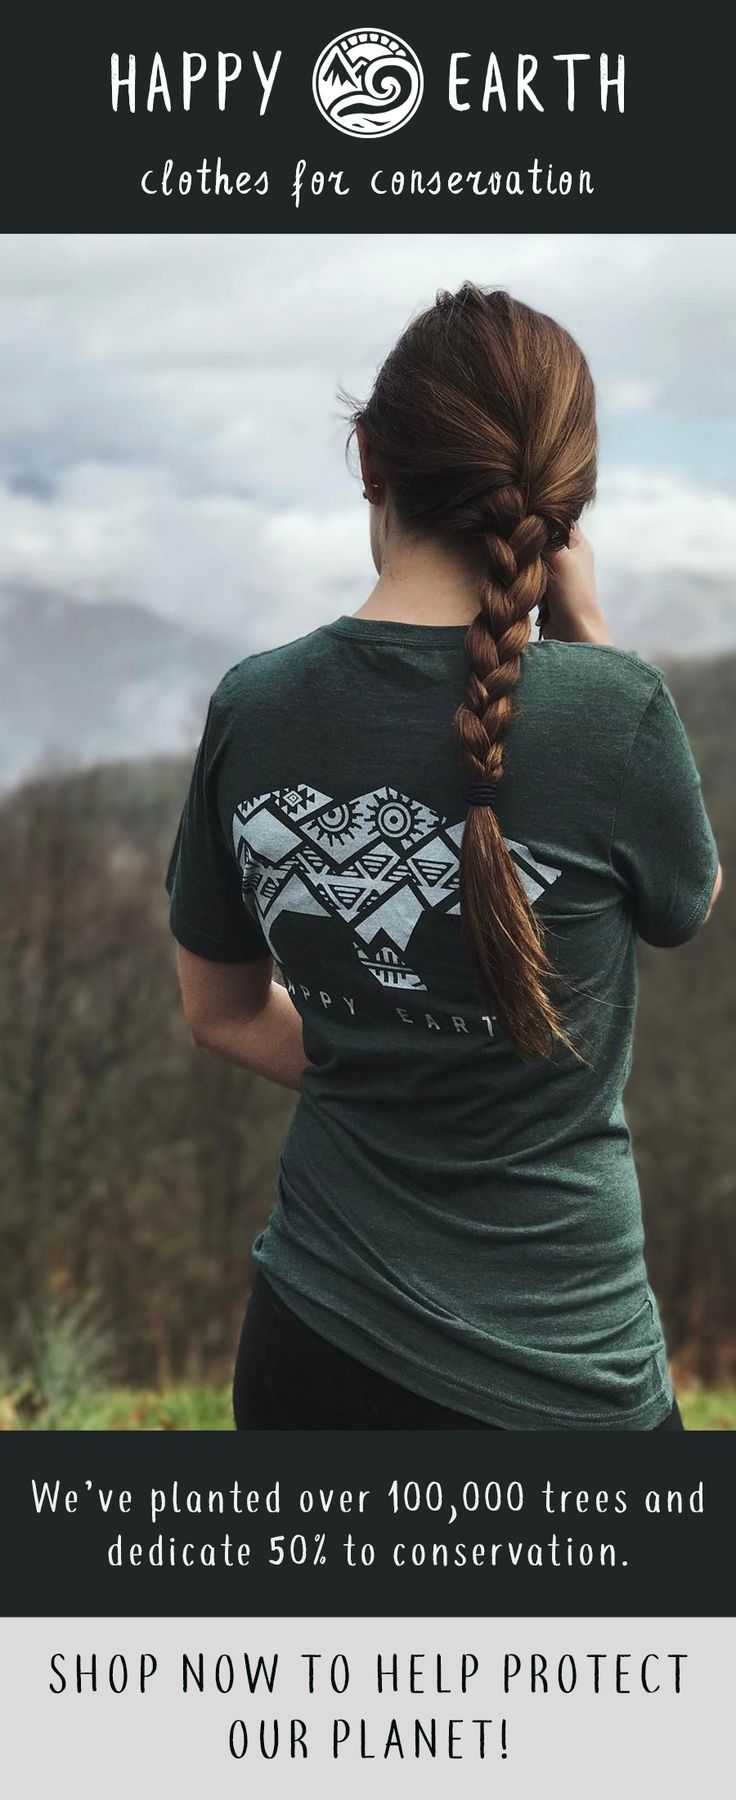 Nature inspired apparel that gives back! Shirts made from sustainable, organic cotton that are perfect for those whoe love the outdoors.